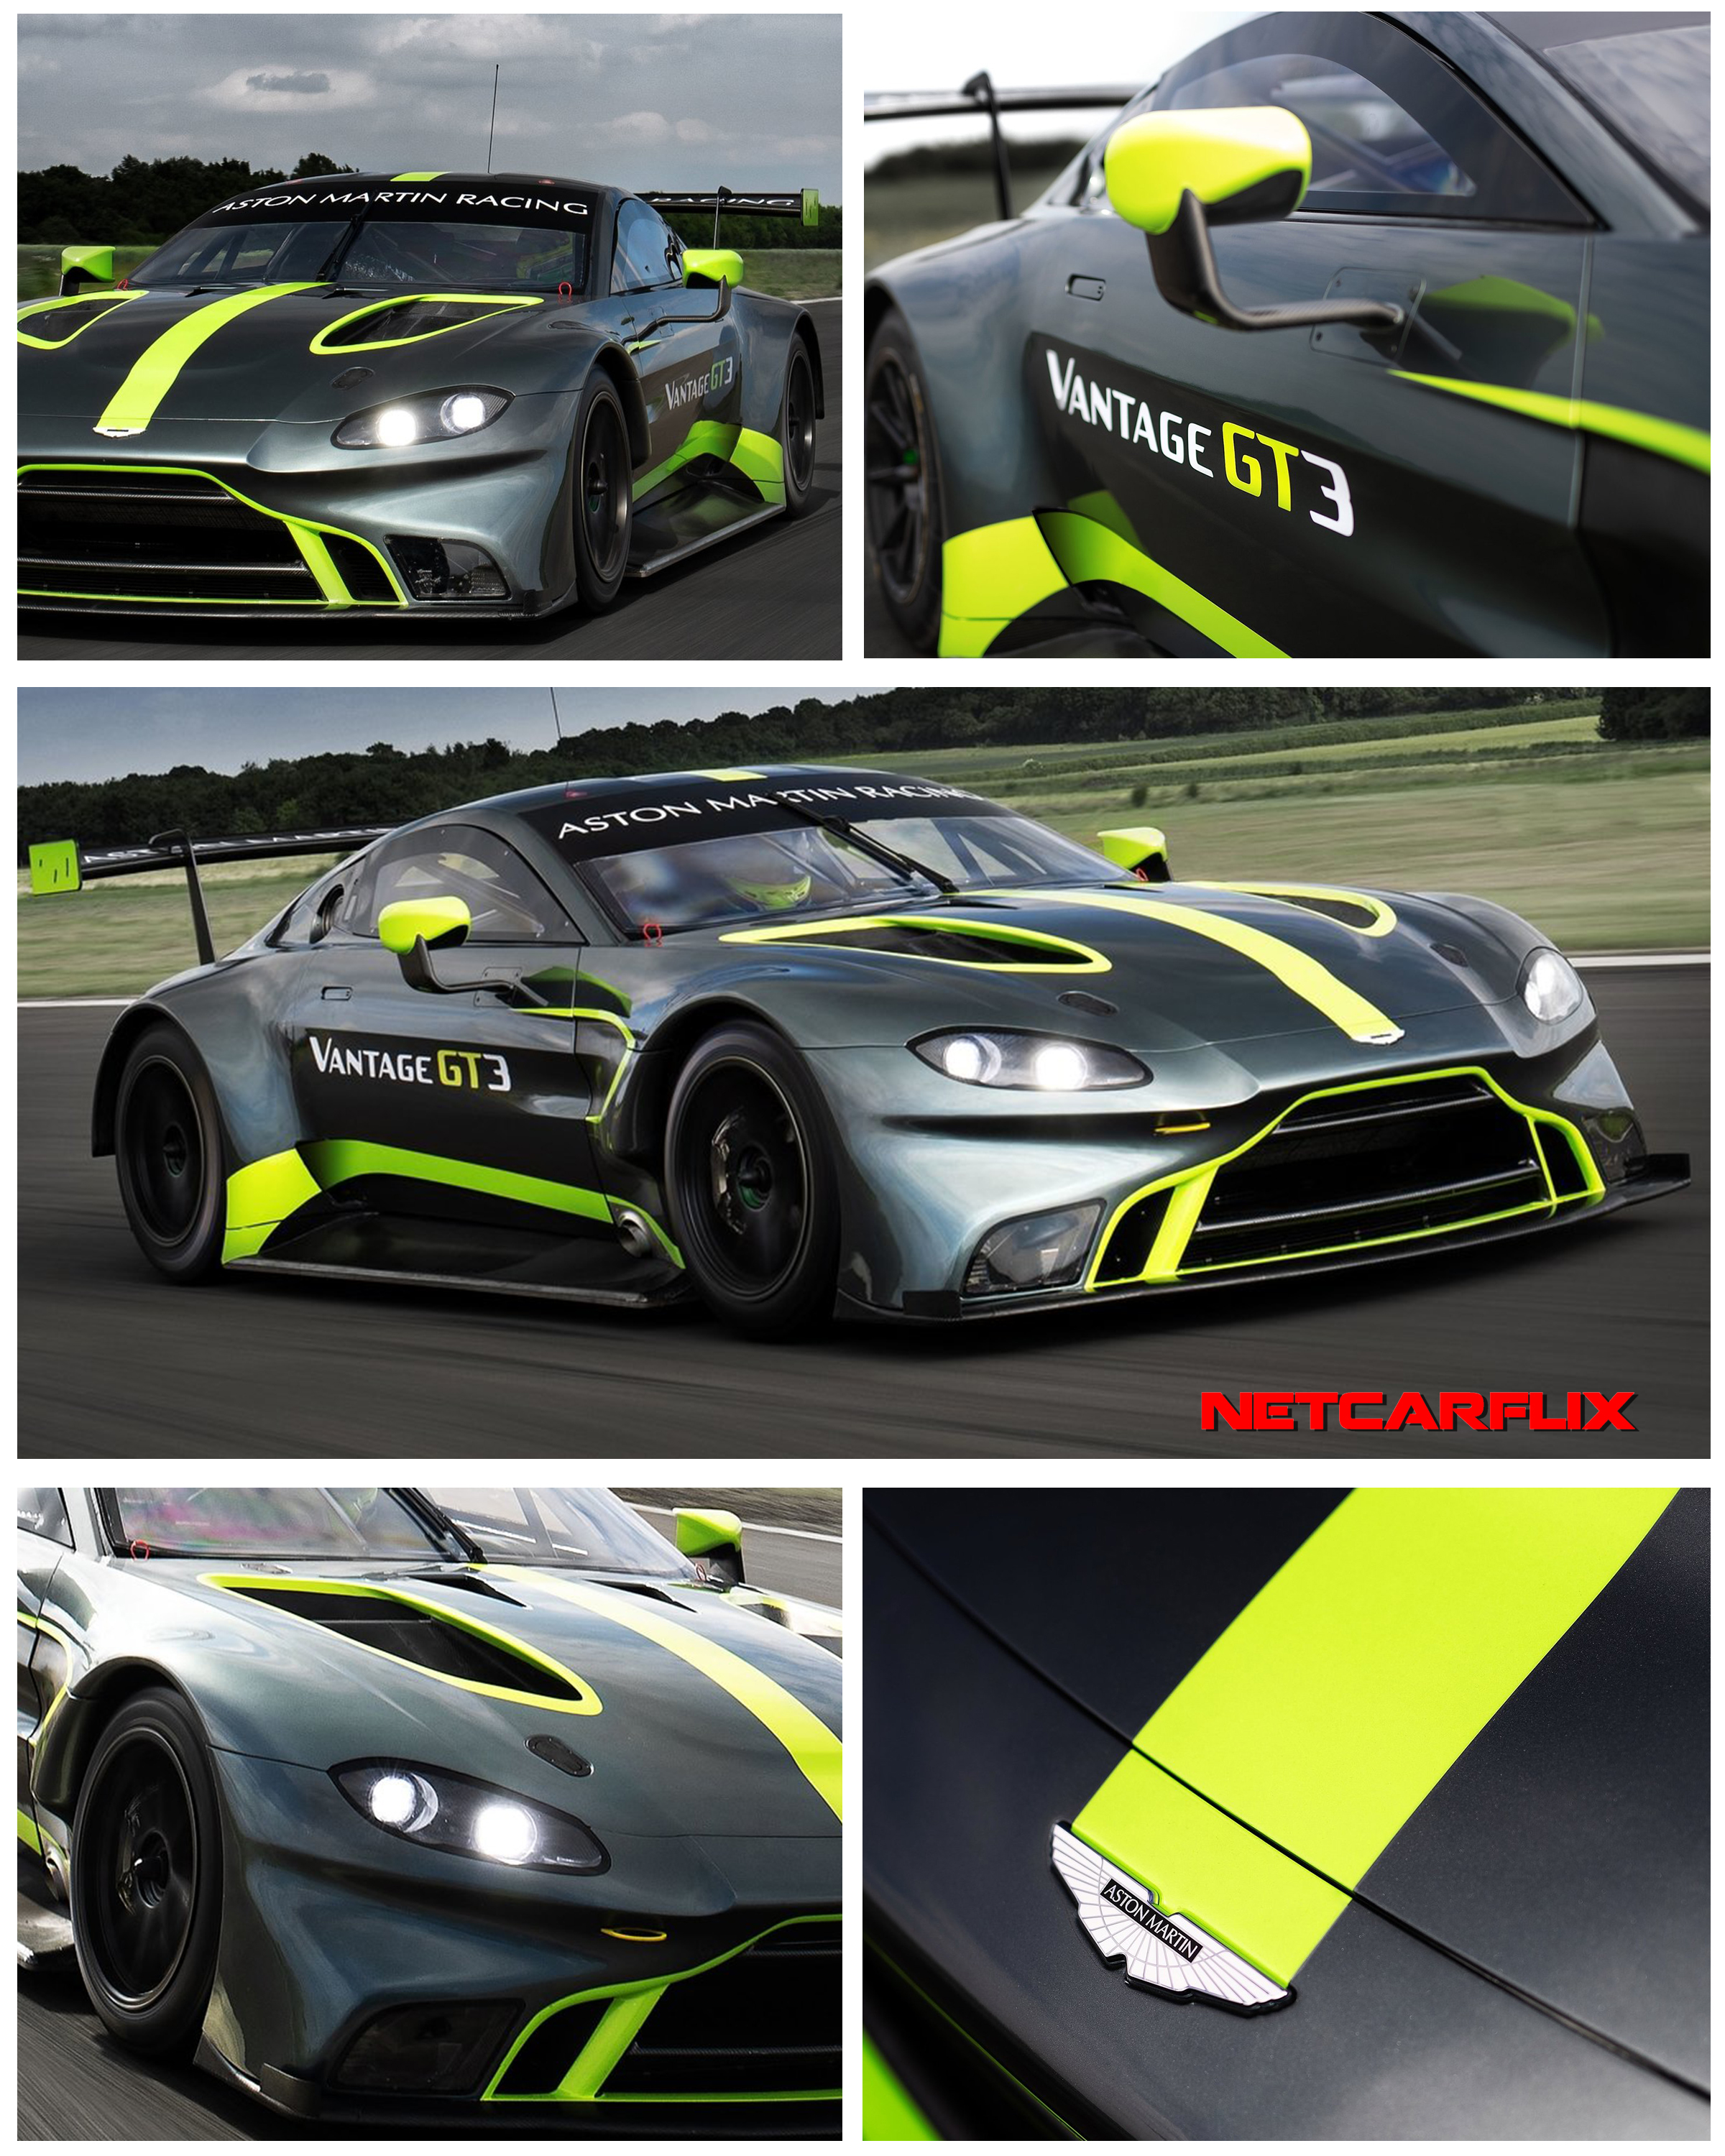 2019 Aston Martin Vantage Gt3 Hq Pictures Specs Information And Videos Dailyrevs